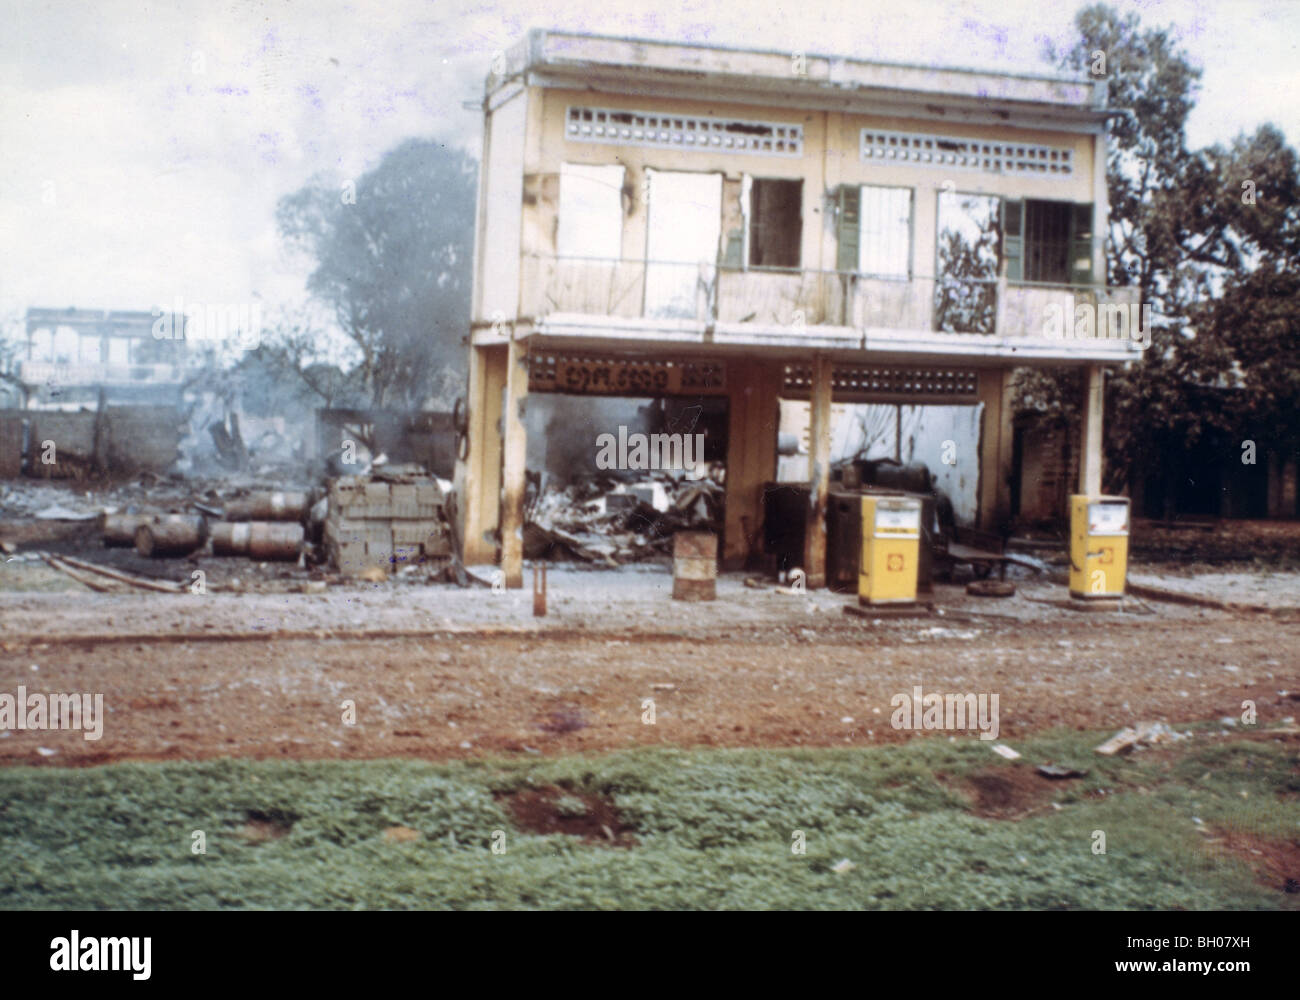 Snoul, Cambodian shell gas station in ruins after May 1970 invasion. 11th Armored Cavalry secured the area with - Stock Image